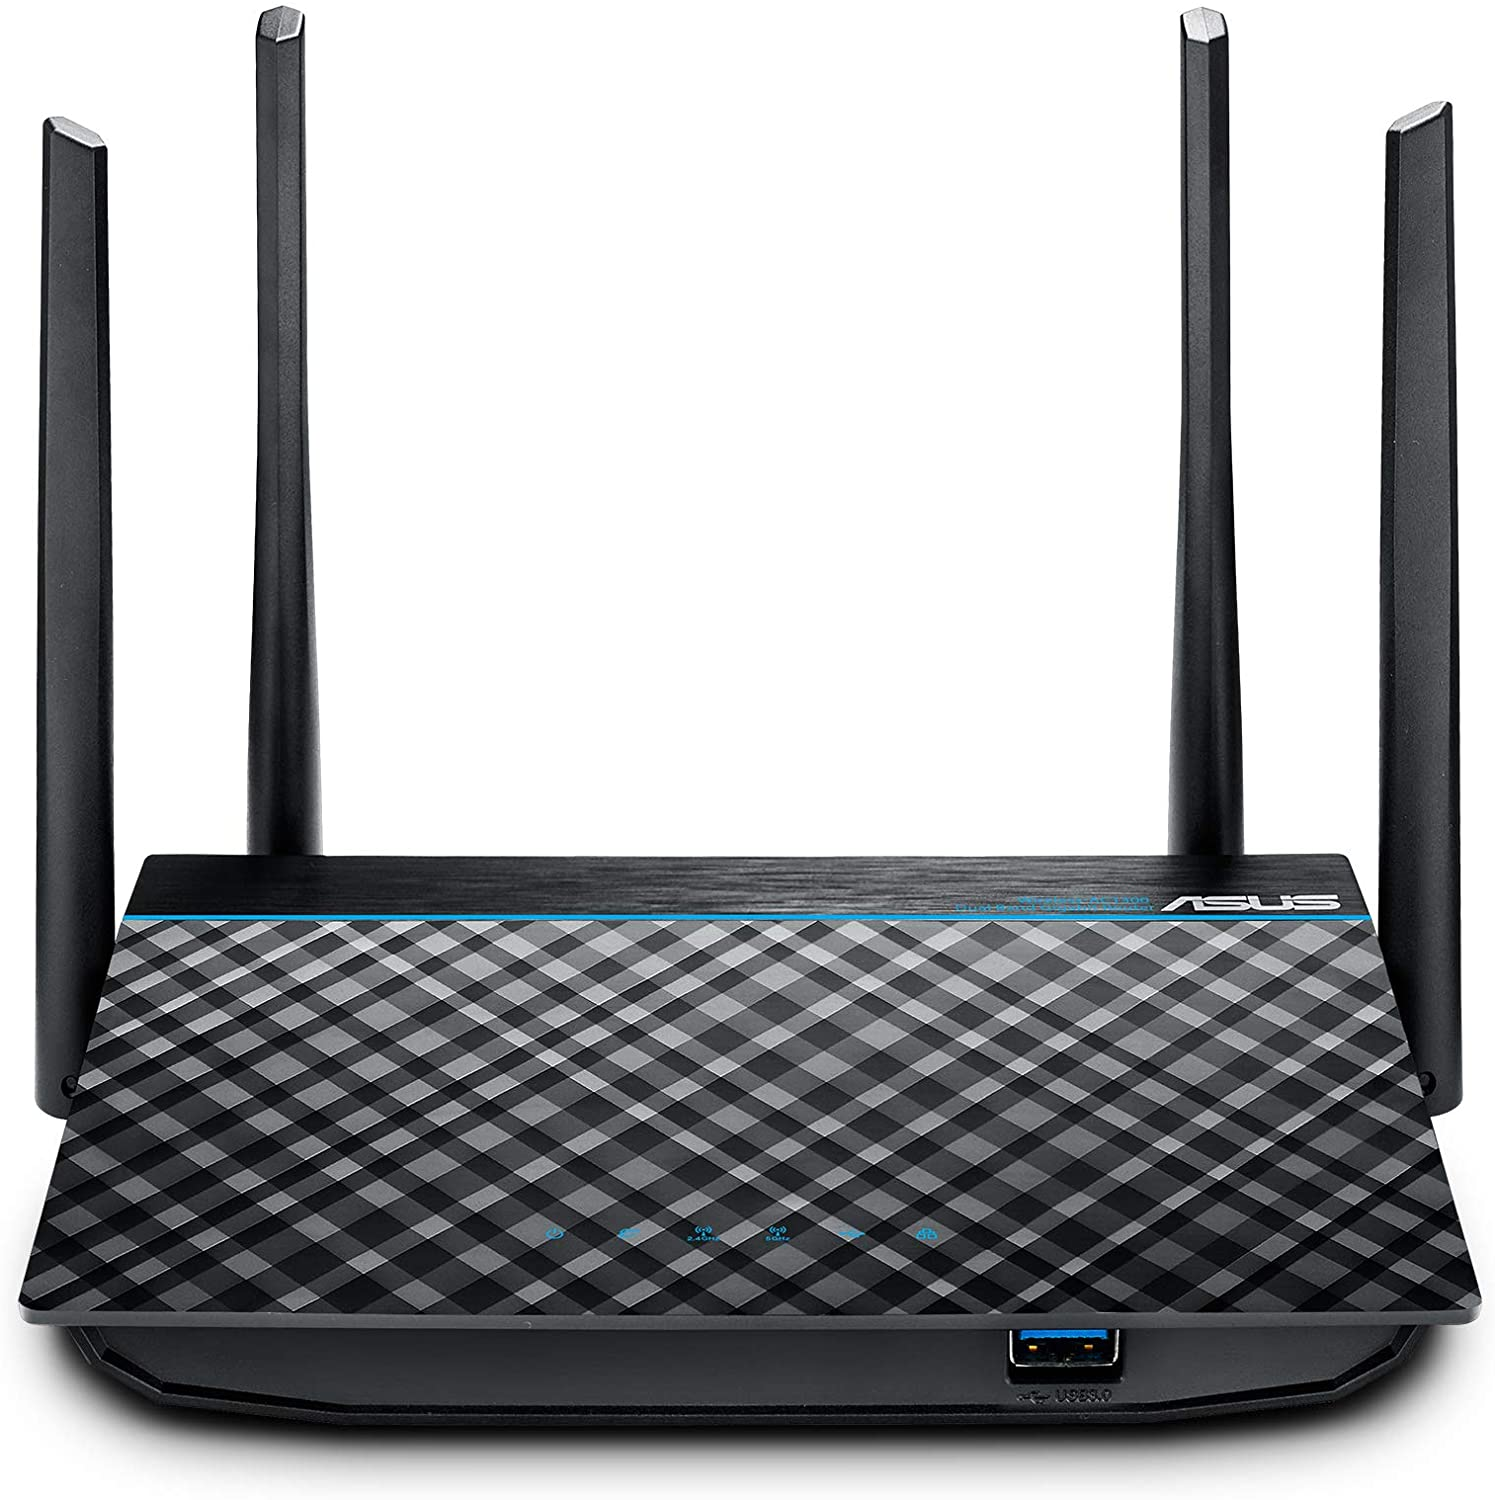 ASUS Dual-Band 2x2 AC1300 Super-Fast WiFi 4-Port Gigabit Router